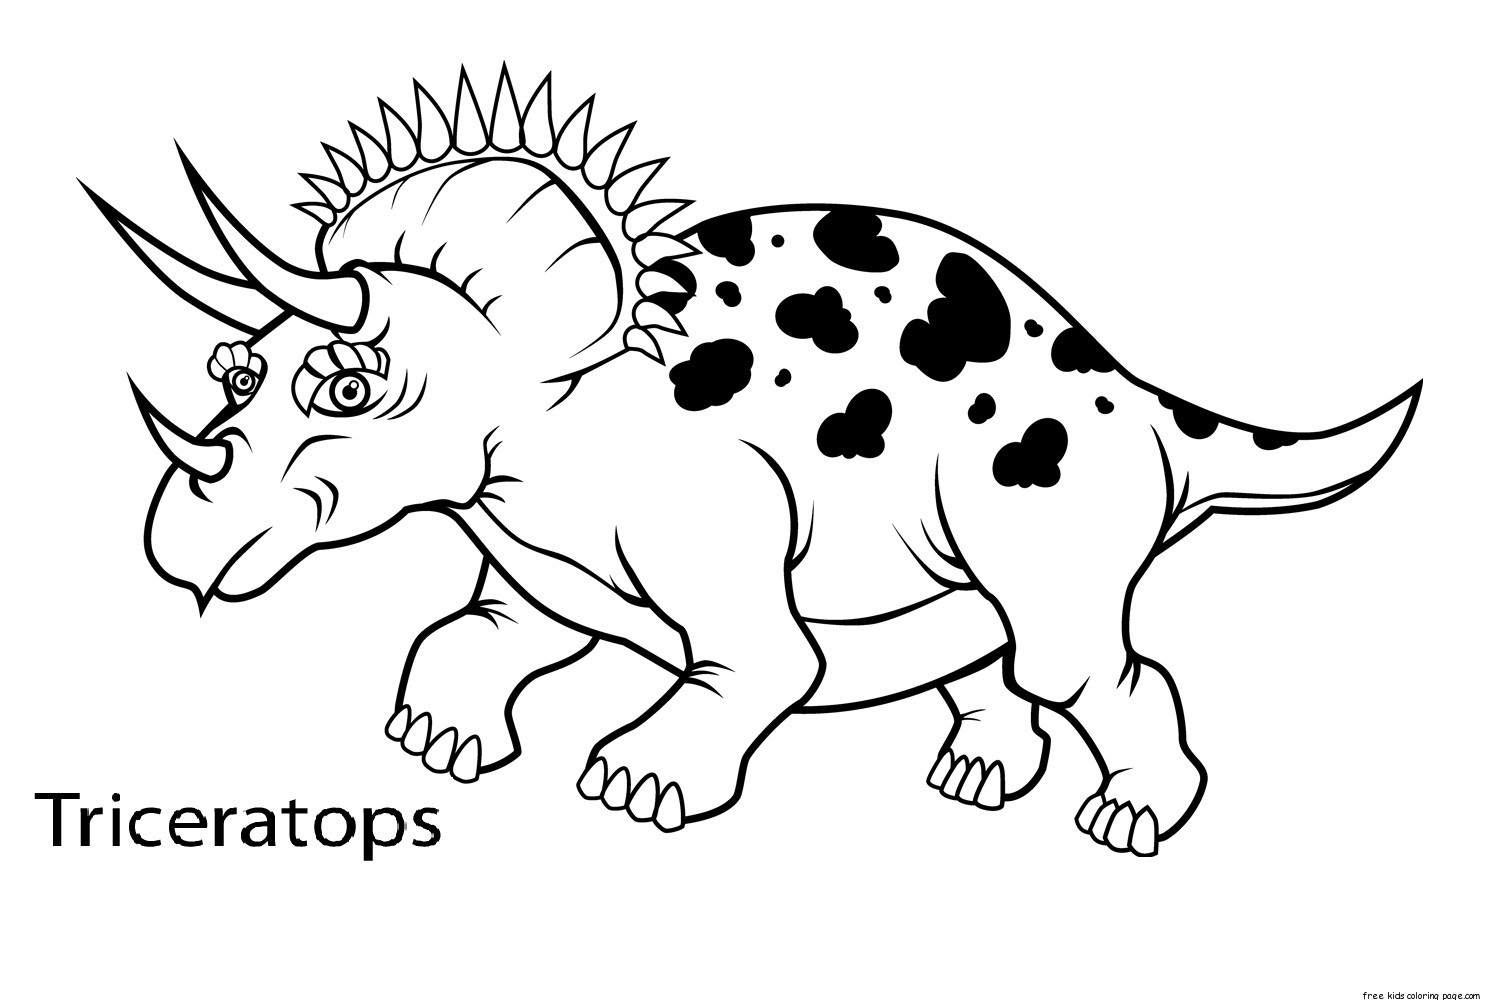 free dinosaur pictures to print and color coloring pages dinosaur free printable coloring pages pictures print color free to dinosaur and